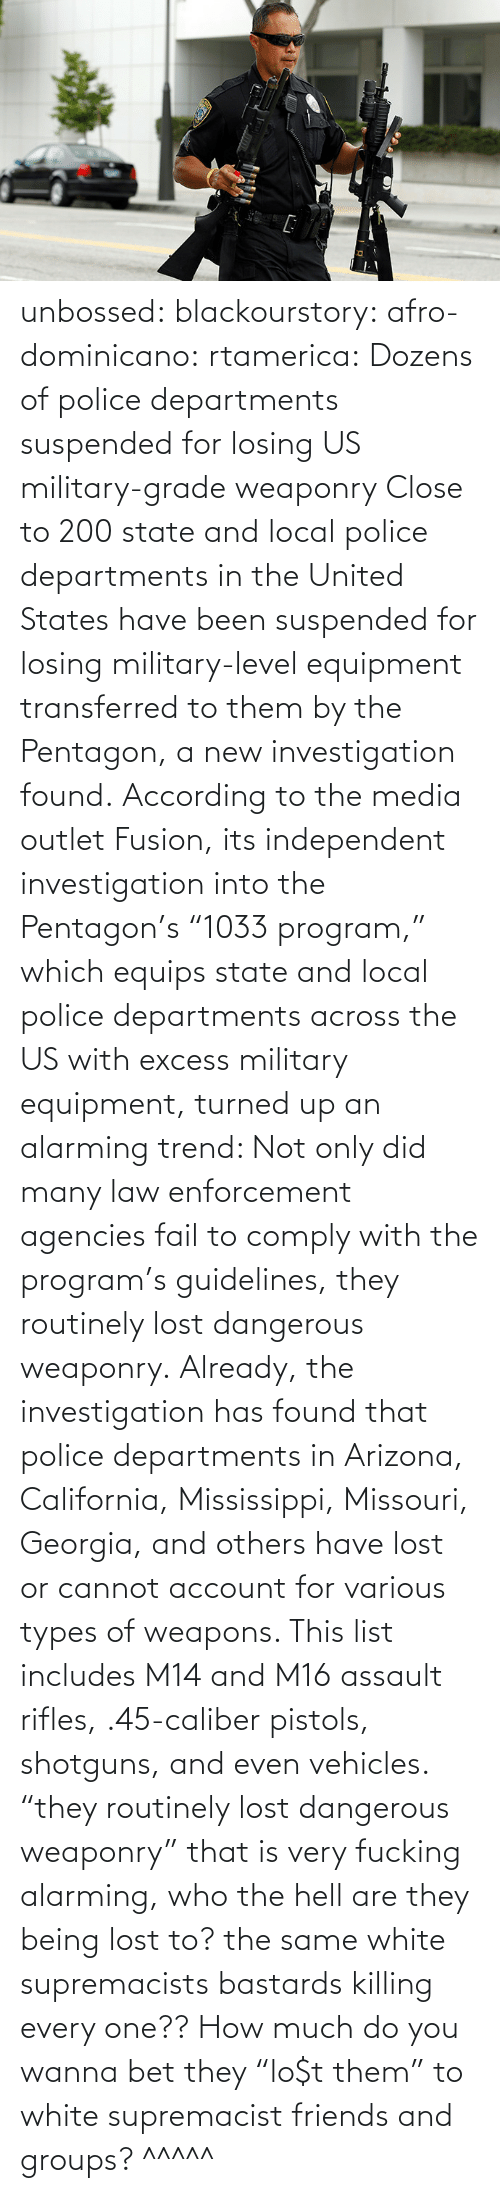 "close: unbossed: blackourstory:  afro-dominicano:  rtamerica:  Dozens of police departments suspended for losing US military-grade weaponry Close to 200 state and local police departments in the United States have been suspended for losing military-level equipment transferred to them by the Pentagon, a new investigation found. According to the media outlet Fusion, its independent investigation into the Pentagon's ""1033 program,"" which equips state and local police departments across the US with excess military equipment, turned up an alarming trend: Not only did many law enforcement agencies fail to comply with the program's guidelines, they routinely lost dangerous weaponry. Already, the investigation has found that police departments in Arizona, California, Mississippi, Missouri, Georgia, and others have lost or cannot account for various types of weapons. This list includes M14 and M16 assault rifles, .45-caliber pistols, shotguns, and even vehicles.  ""they routinely lost dangerous weaponry"" that is very fucking alarming, who the hell are they being lost to? the same white supremacists bastards killing every one??  How much do you wanna bet they ""lo$t them"" to white supremacist friends and groups?   ^^^^^"